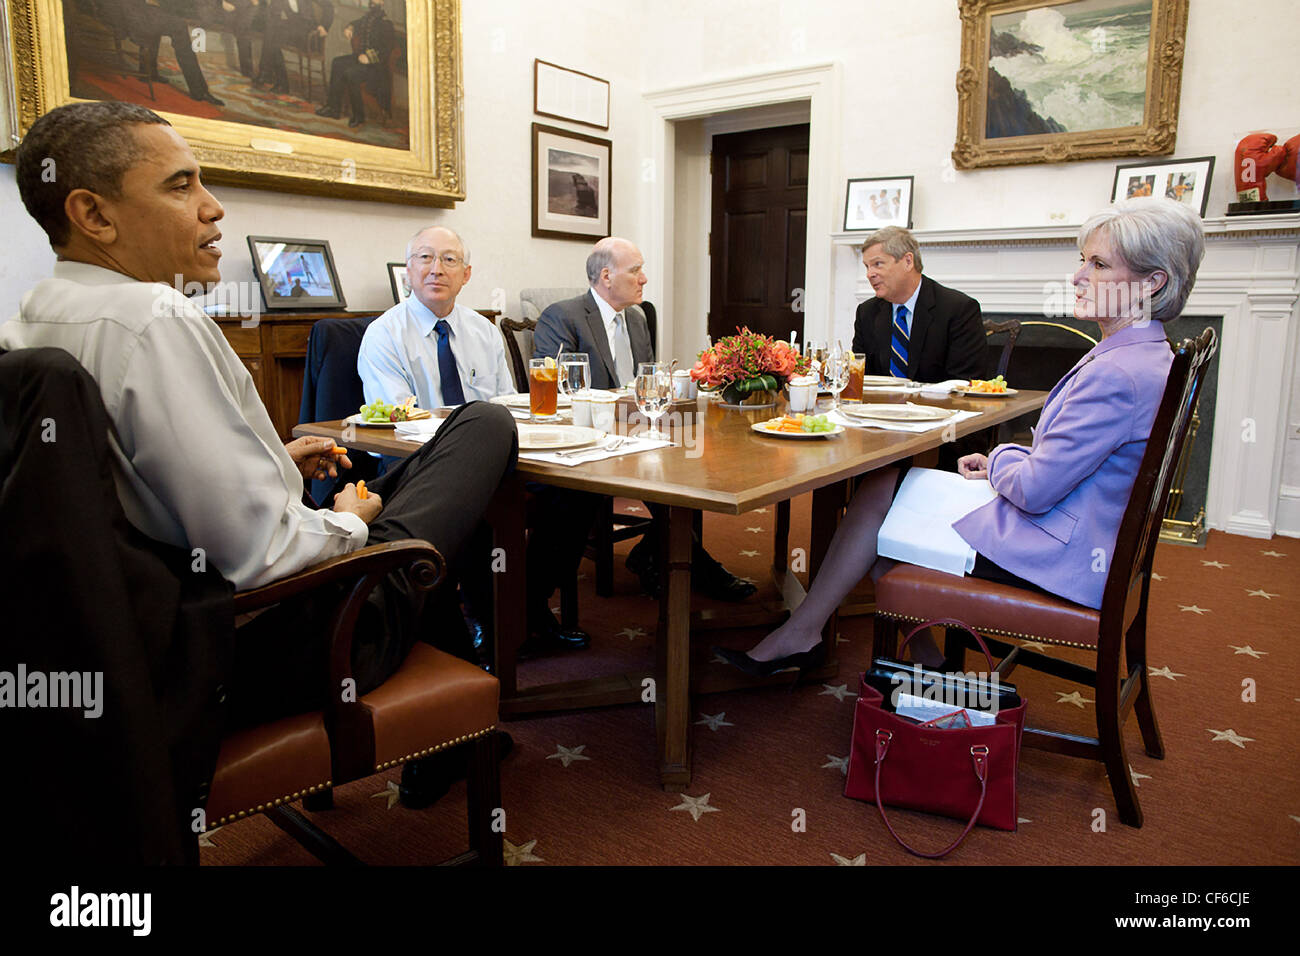 President Barack Obama has lunch with Cabinet secretaries in the Oval Office Private Dining Room March 10, 2011 - Stock Image